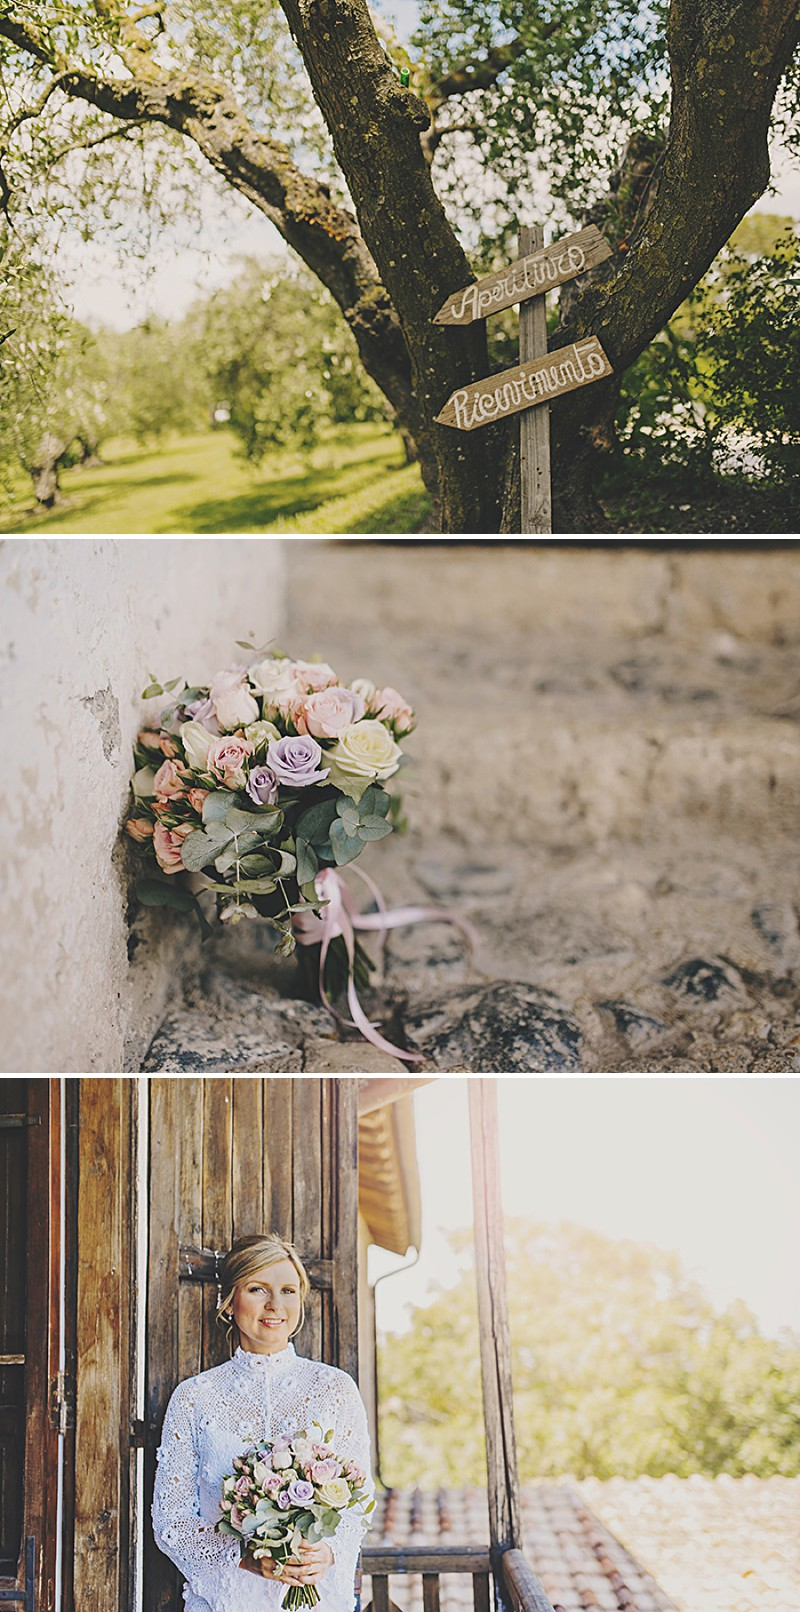 An Italian Destination Wedding At Borgo di Tragliata Near Rome With A Vintage Crotchet Wedding Dress and Sorbet Rose Bouquet Photographed By Mark Pacura._0001